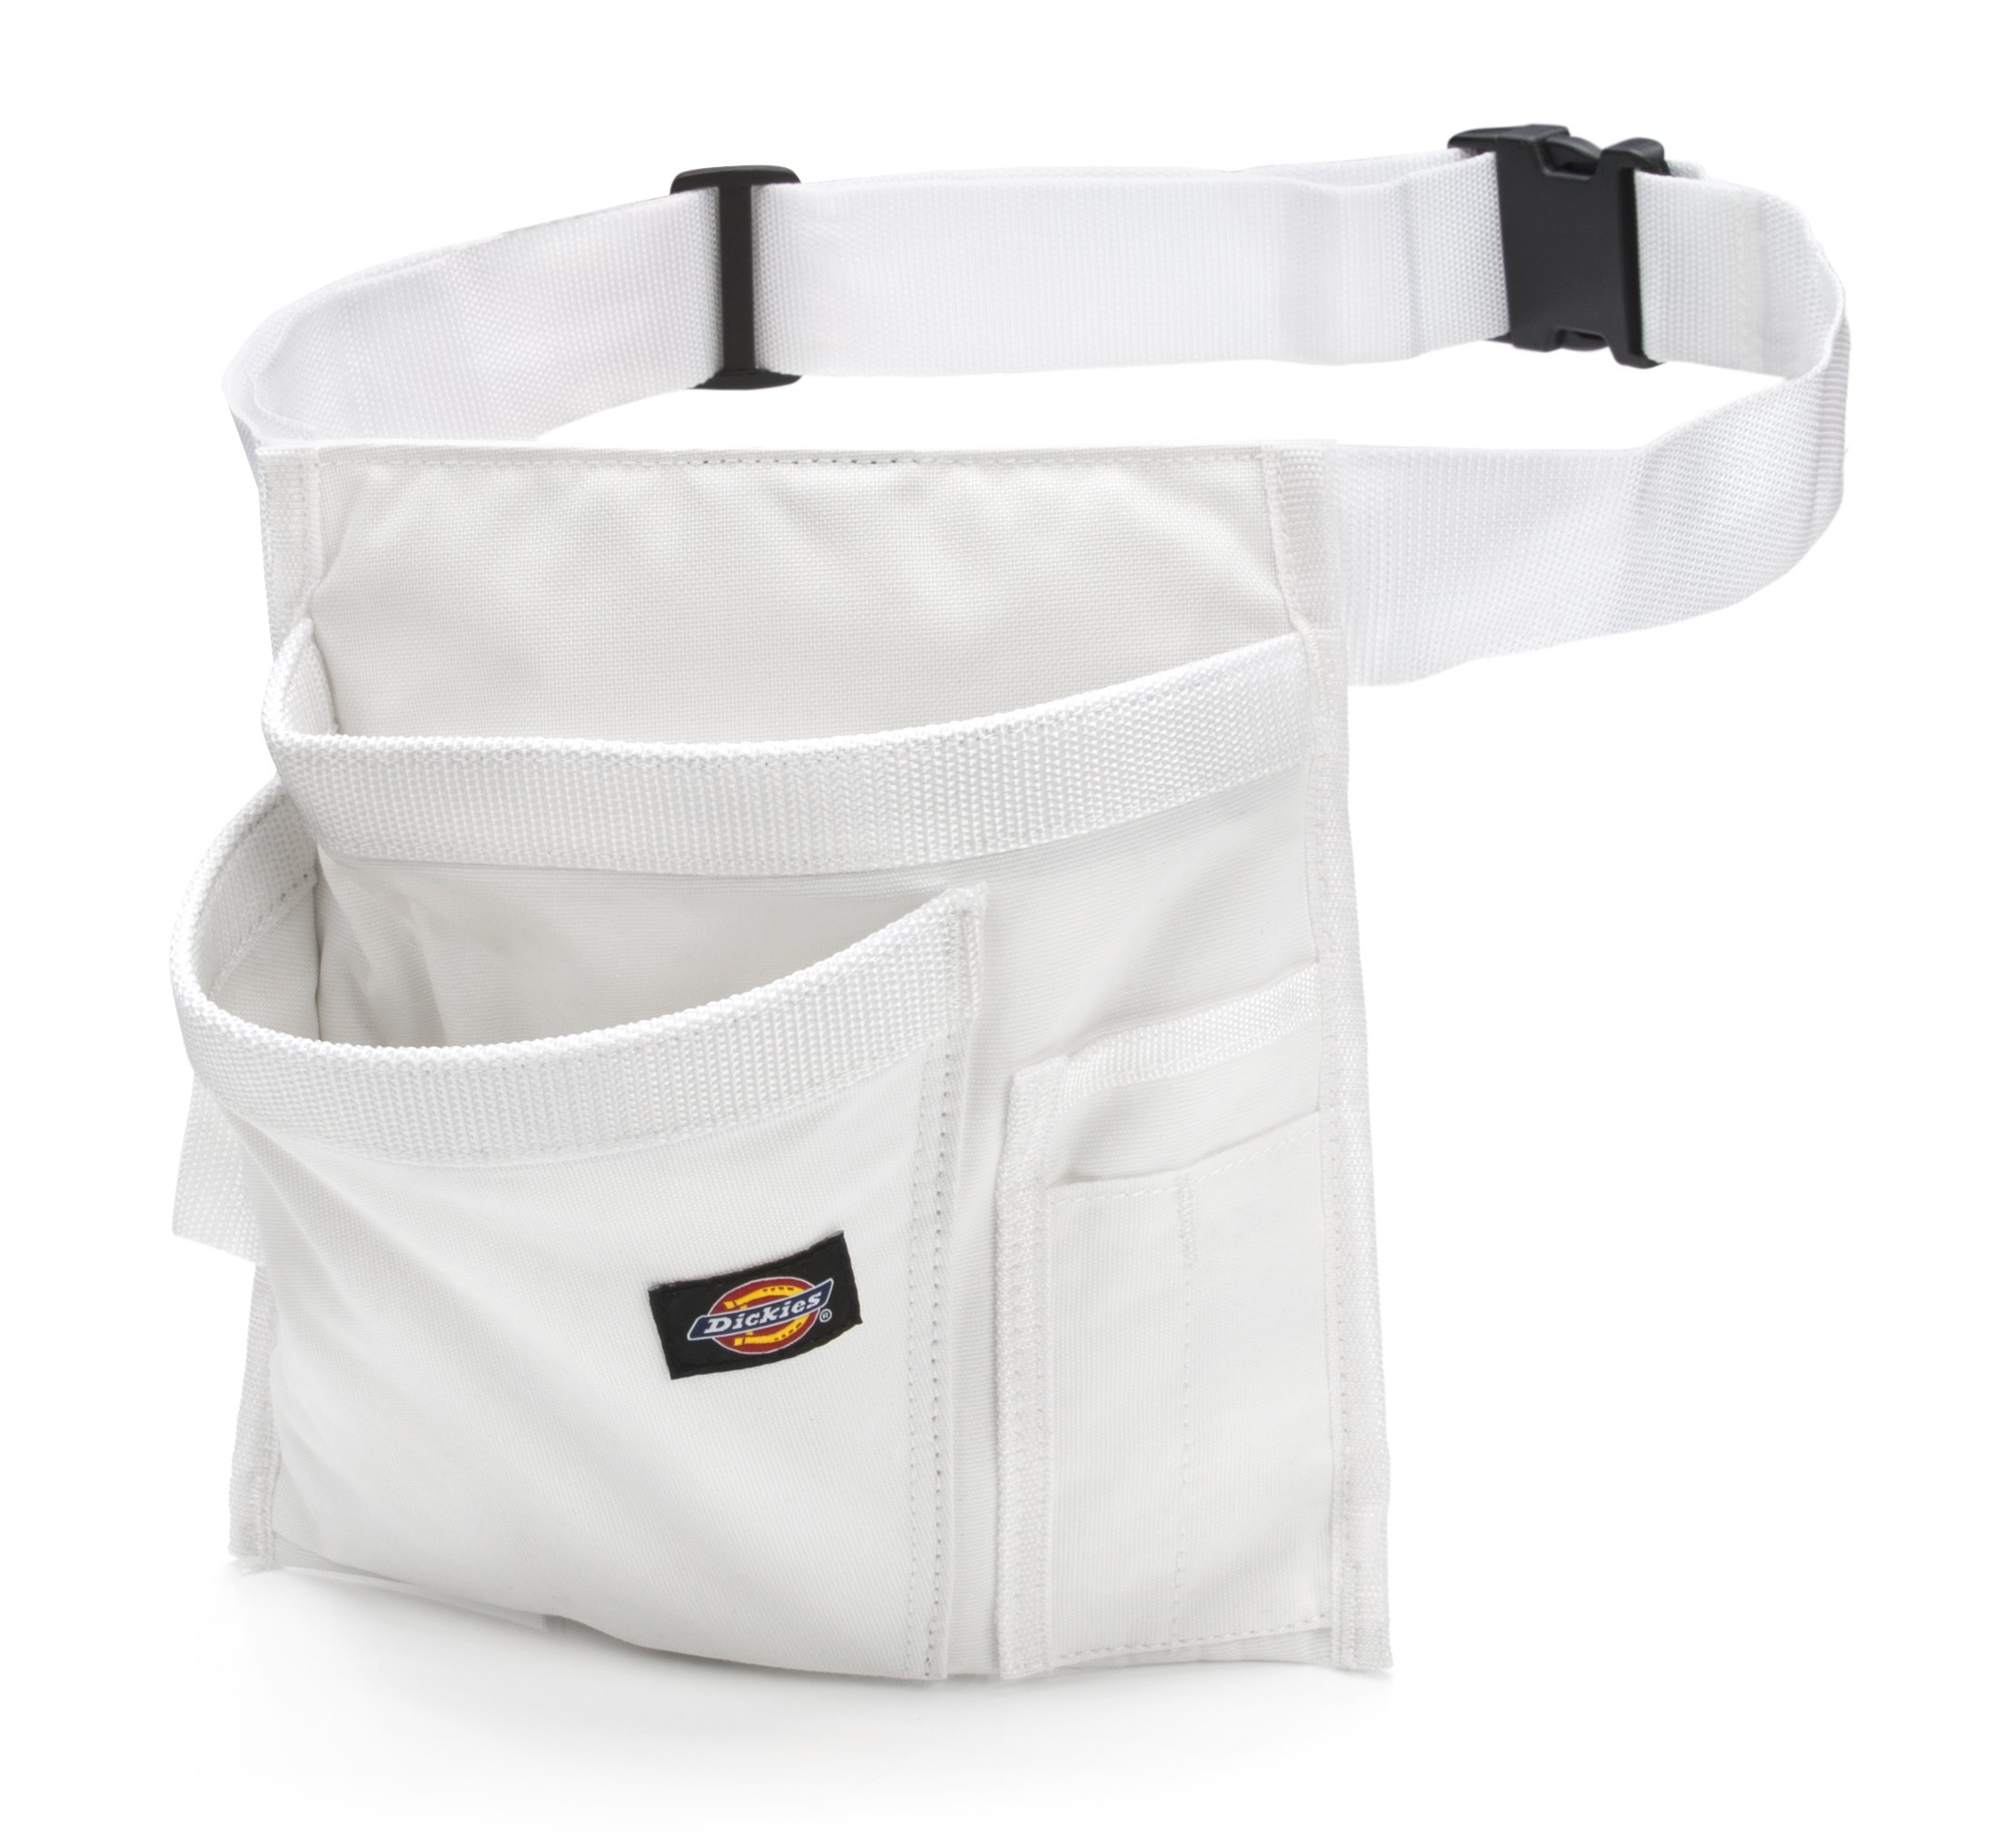 Dickies 57049 5-Pocket Single Side Tool Pouch/Work Apron by Dickies Work Gear